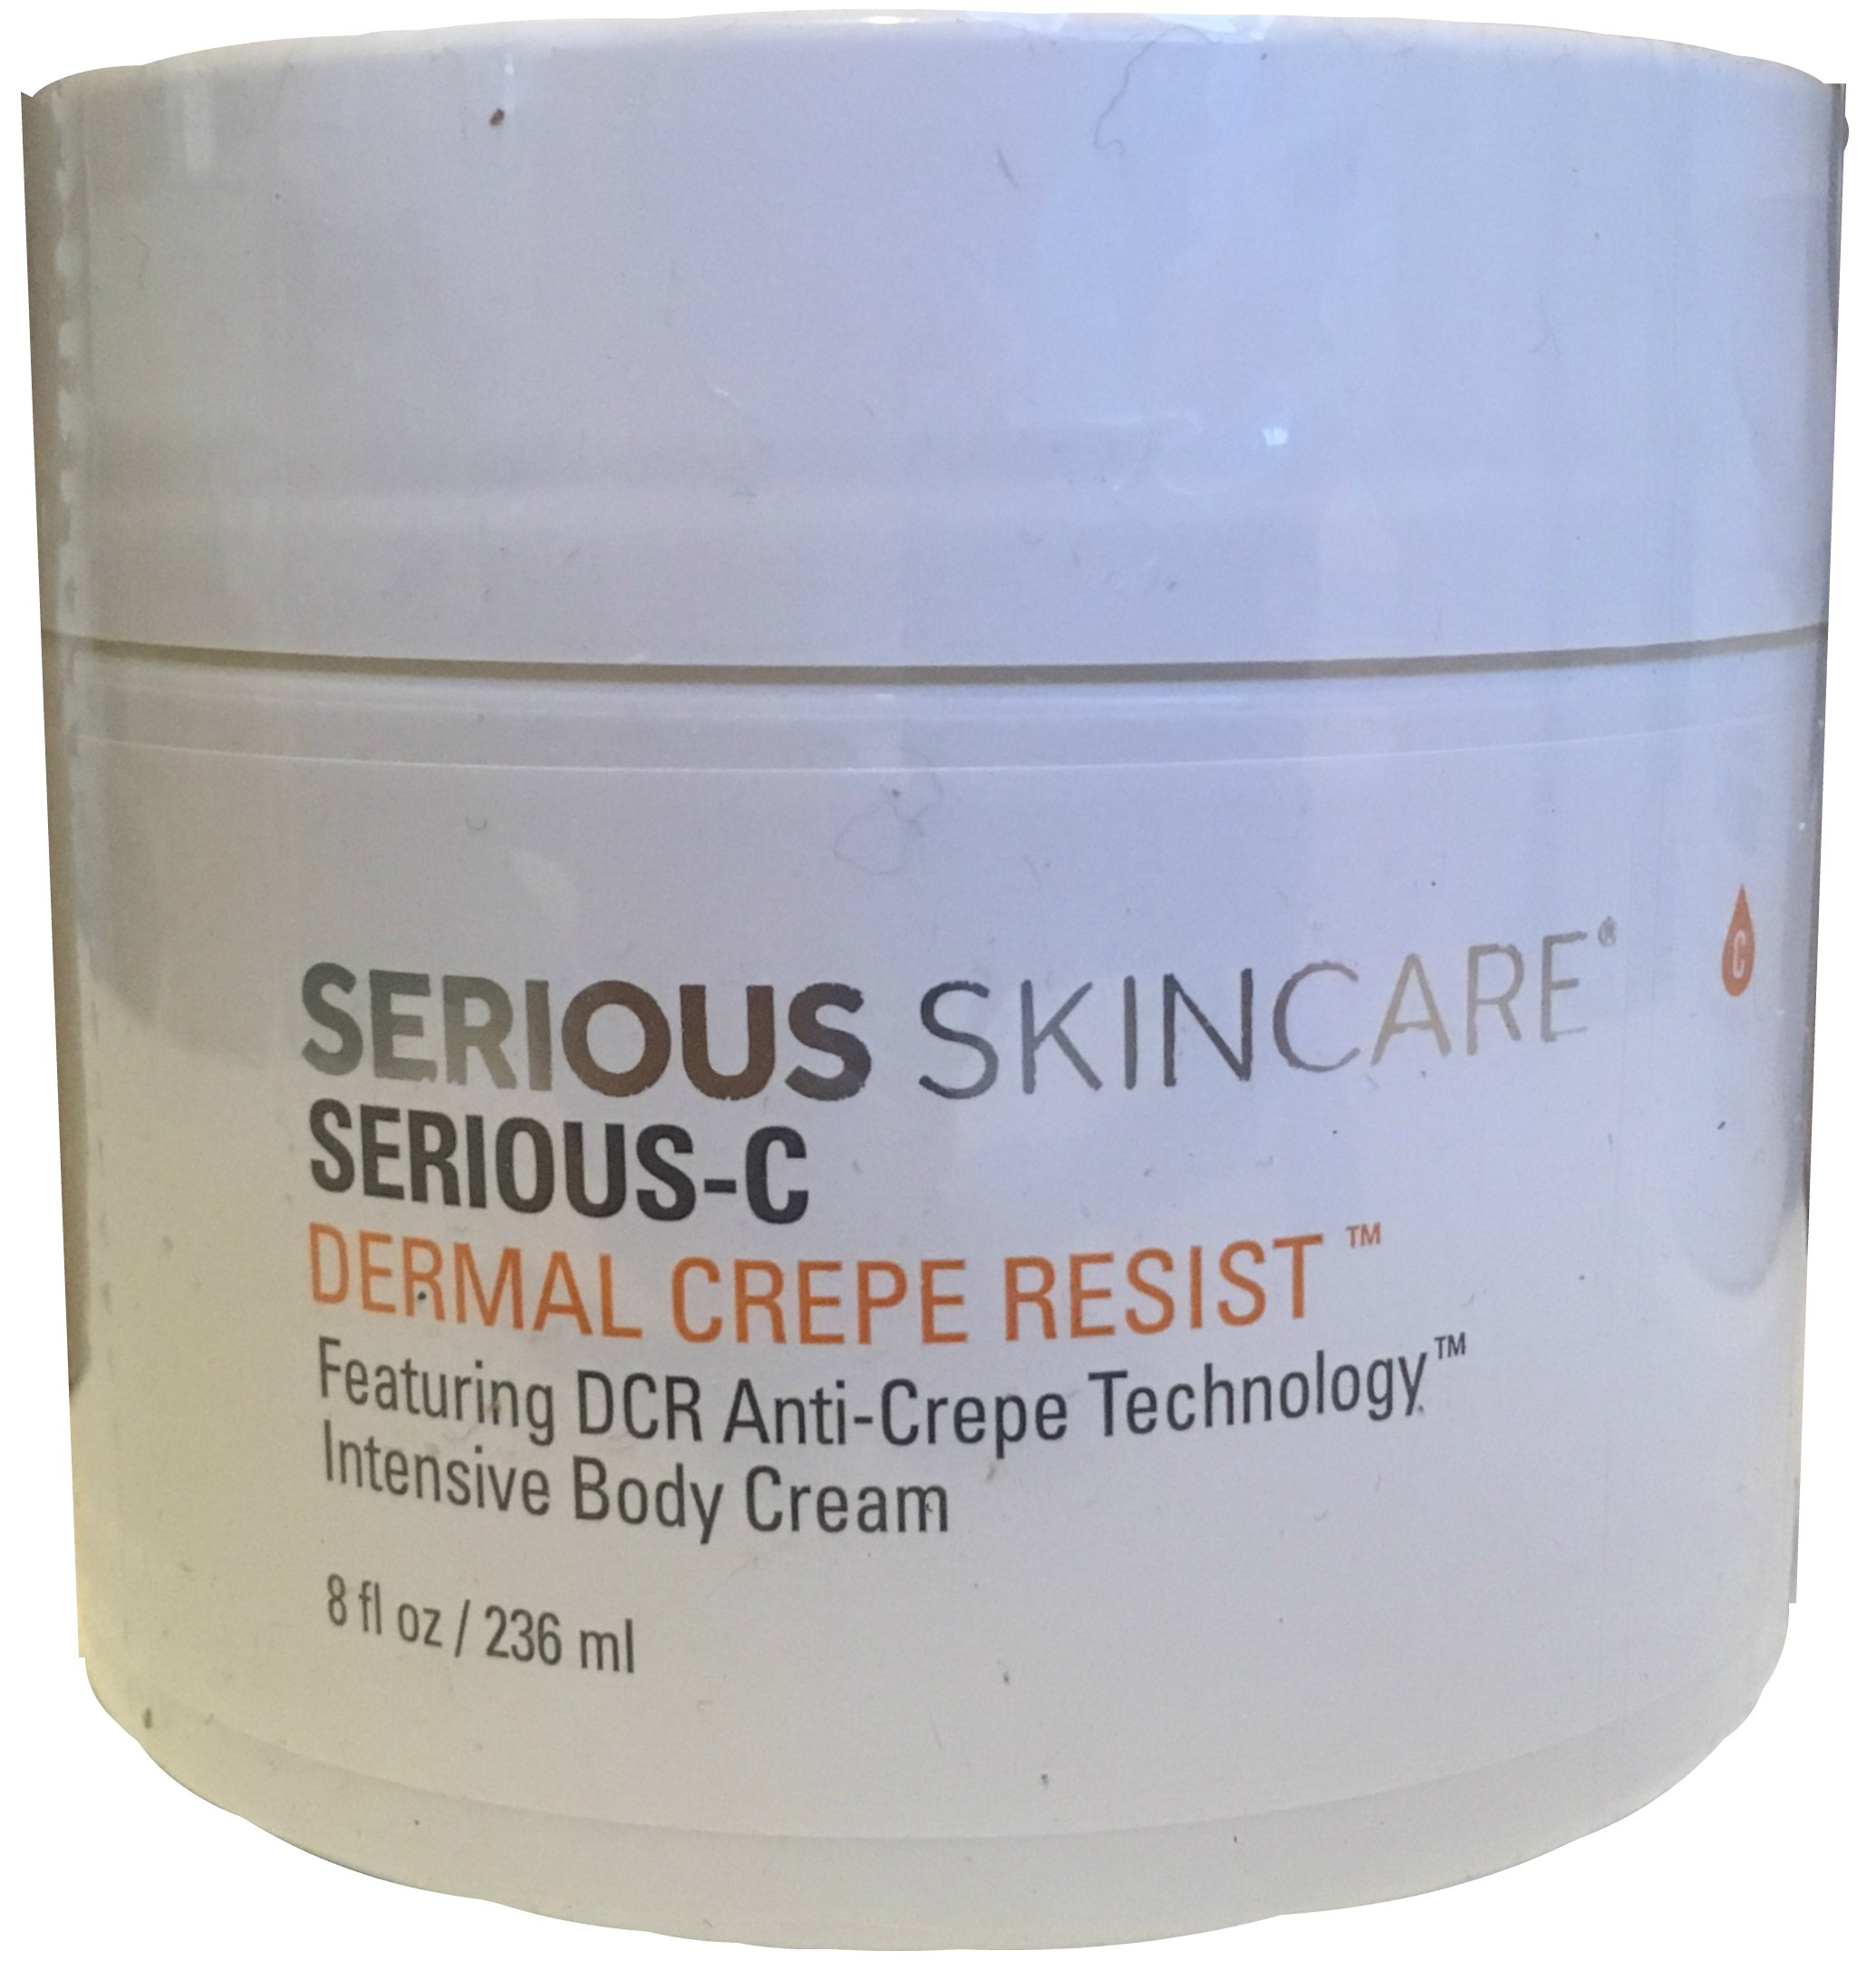 Serious Skincare Serious-C Dermal Crepe Resist 8 ounce Intensive Body Cream by Serious Skincare